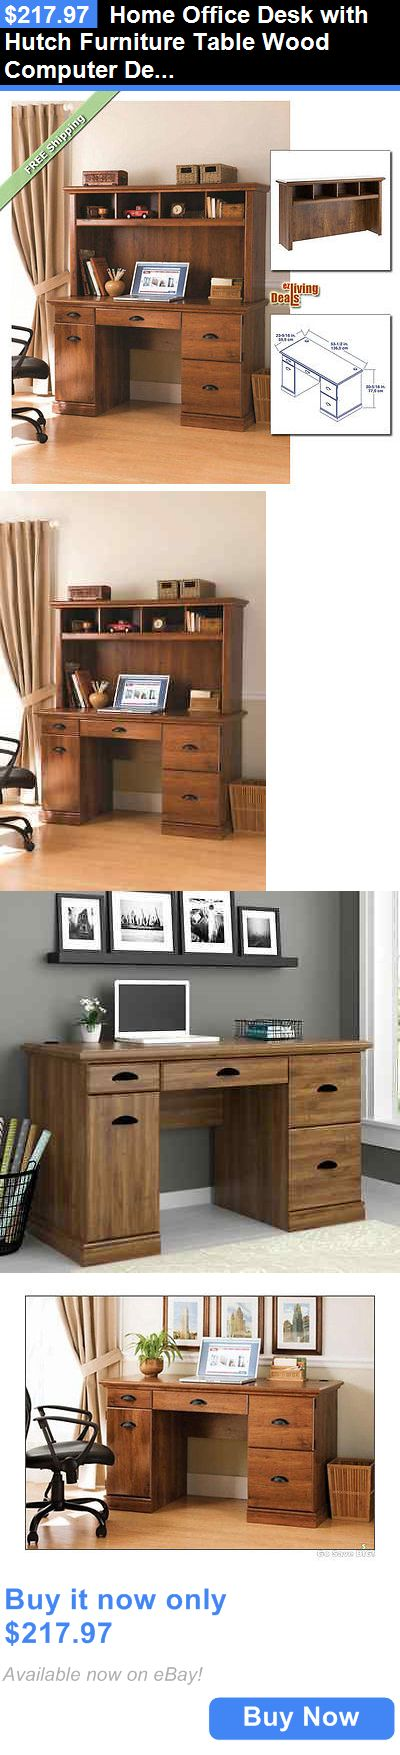 Office Furniture: Home Office Desk With Hutch Furniture Table Wood Computer  Desks, Abby Oak